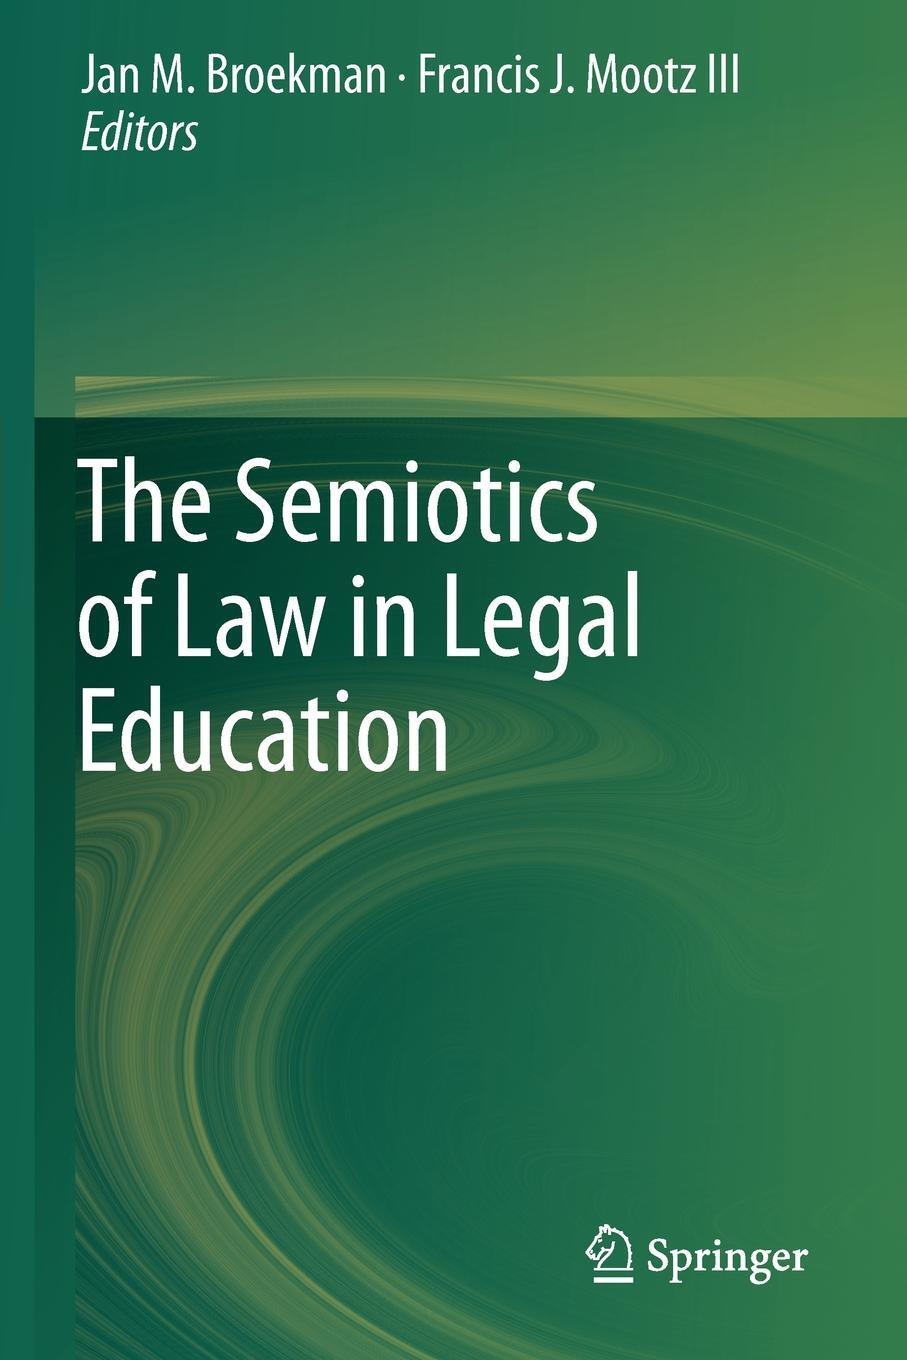 The Semiotics of Law in Legal Education.